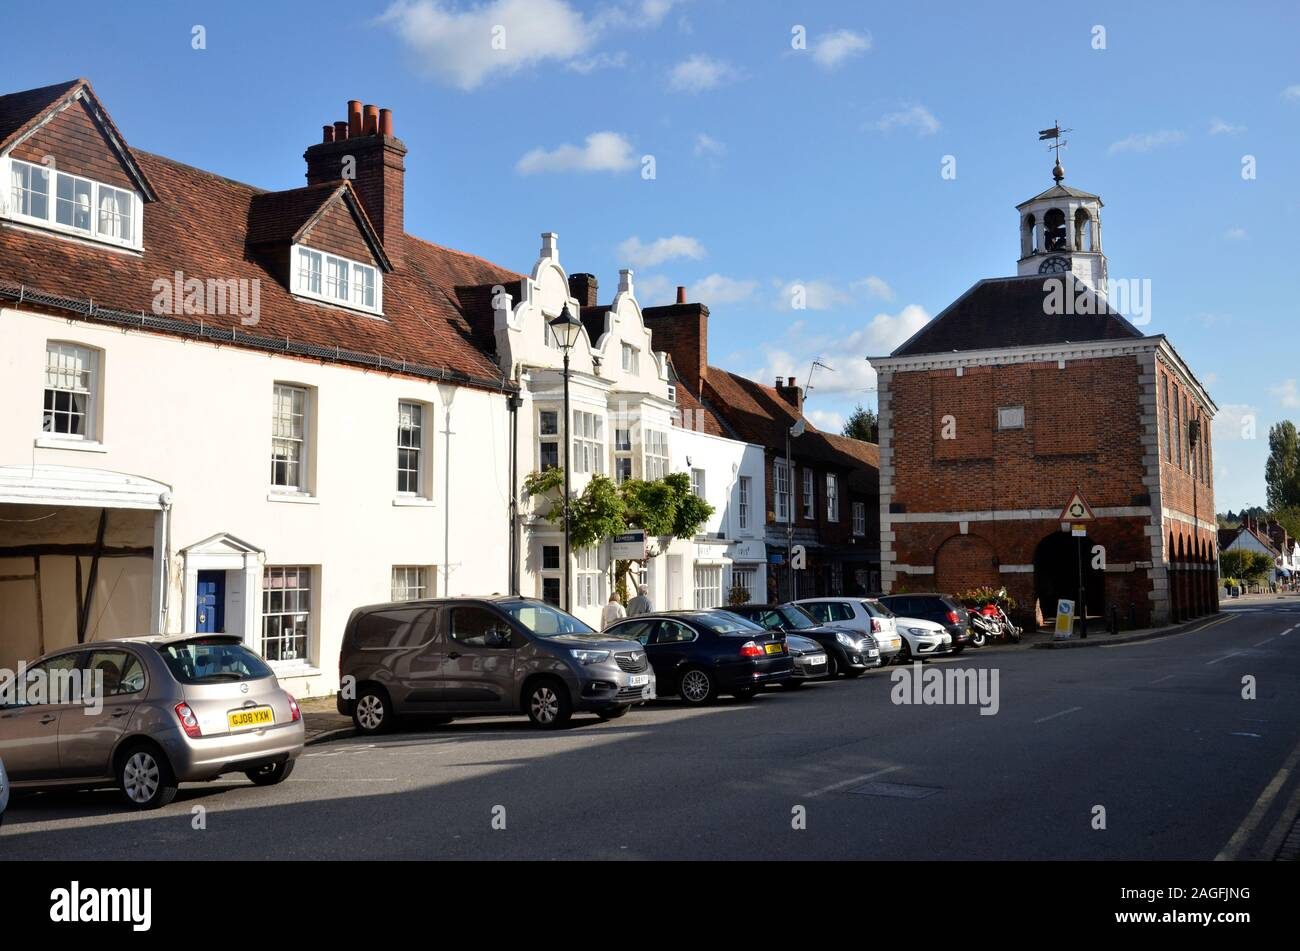 The High Street and Market Hall in Old Amersham, Buckinghamshire, England Stock Photo